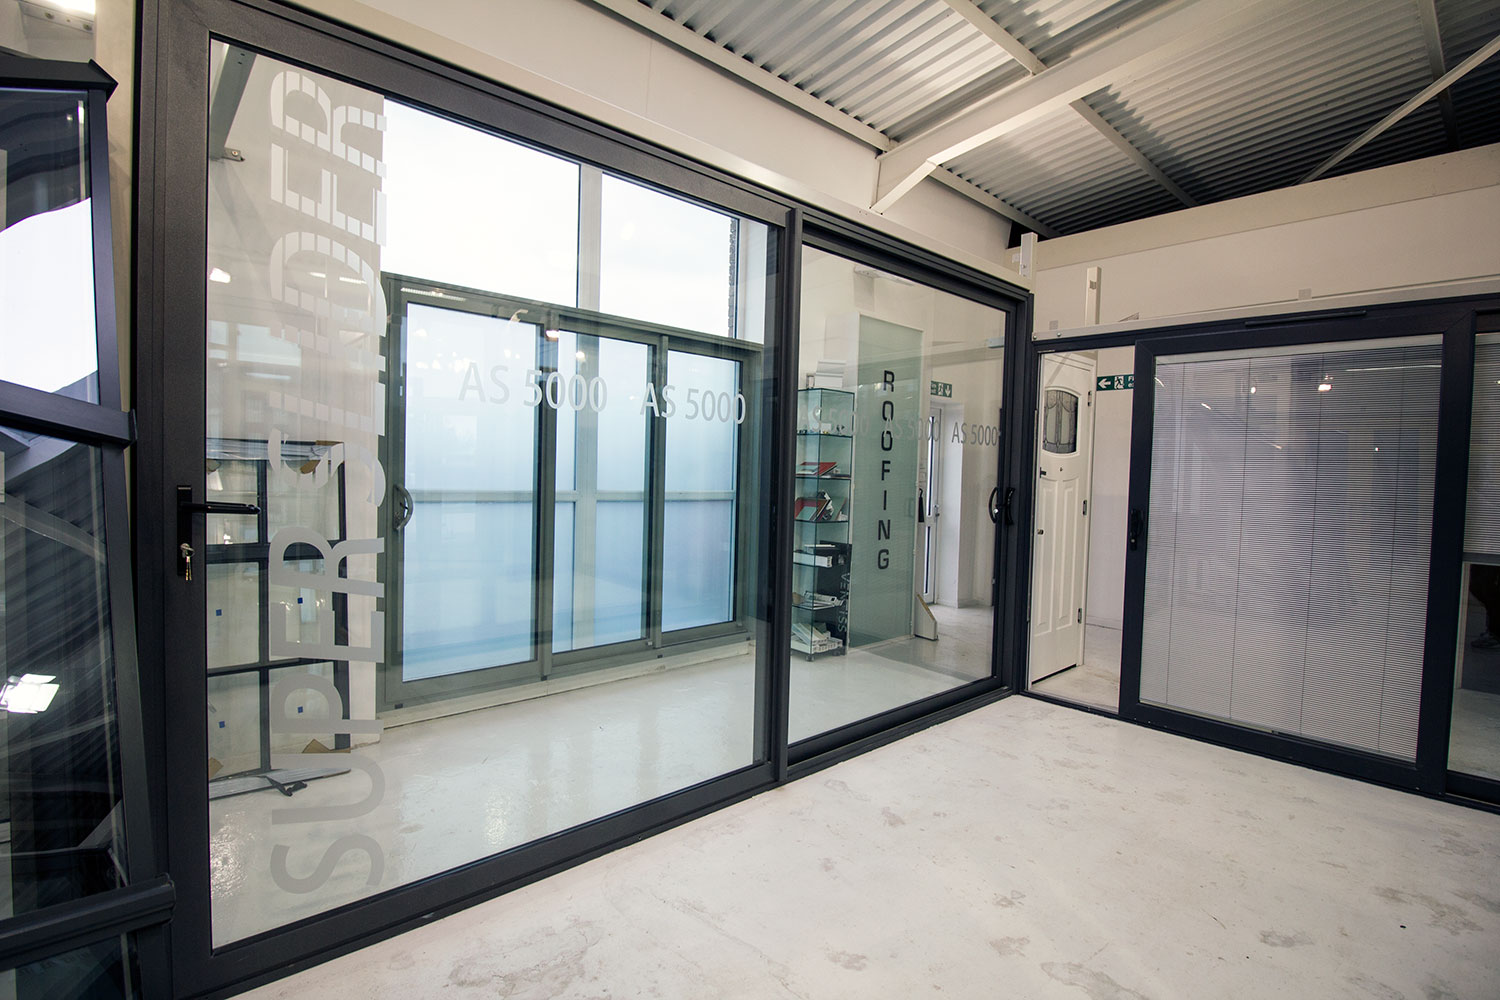 Aluminium Sliding Doors : Aluminium sliding doors john knight glass heswall uk